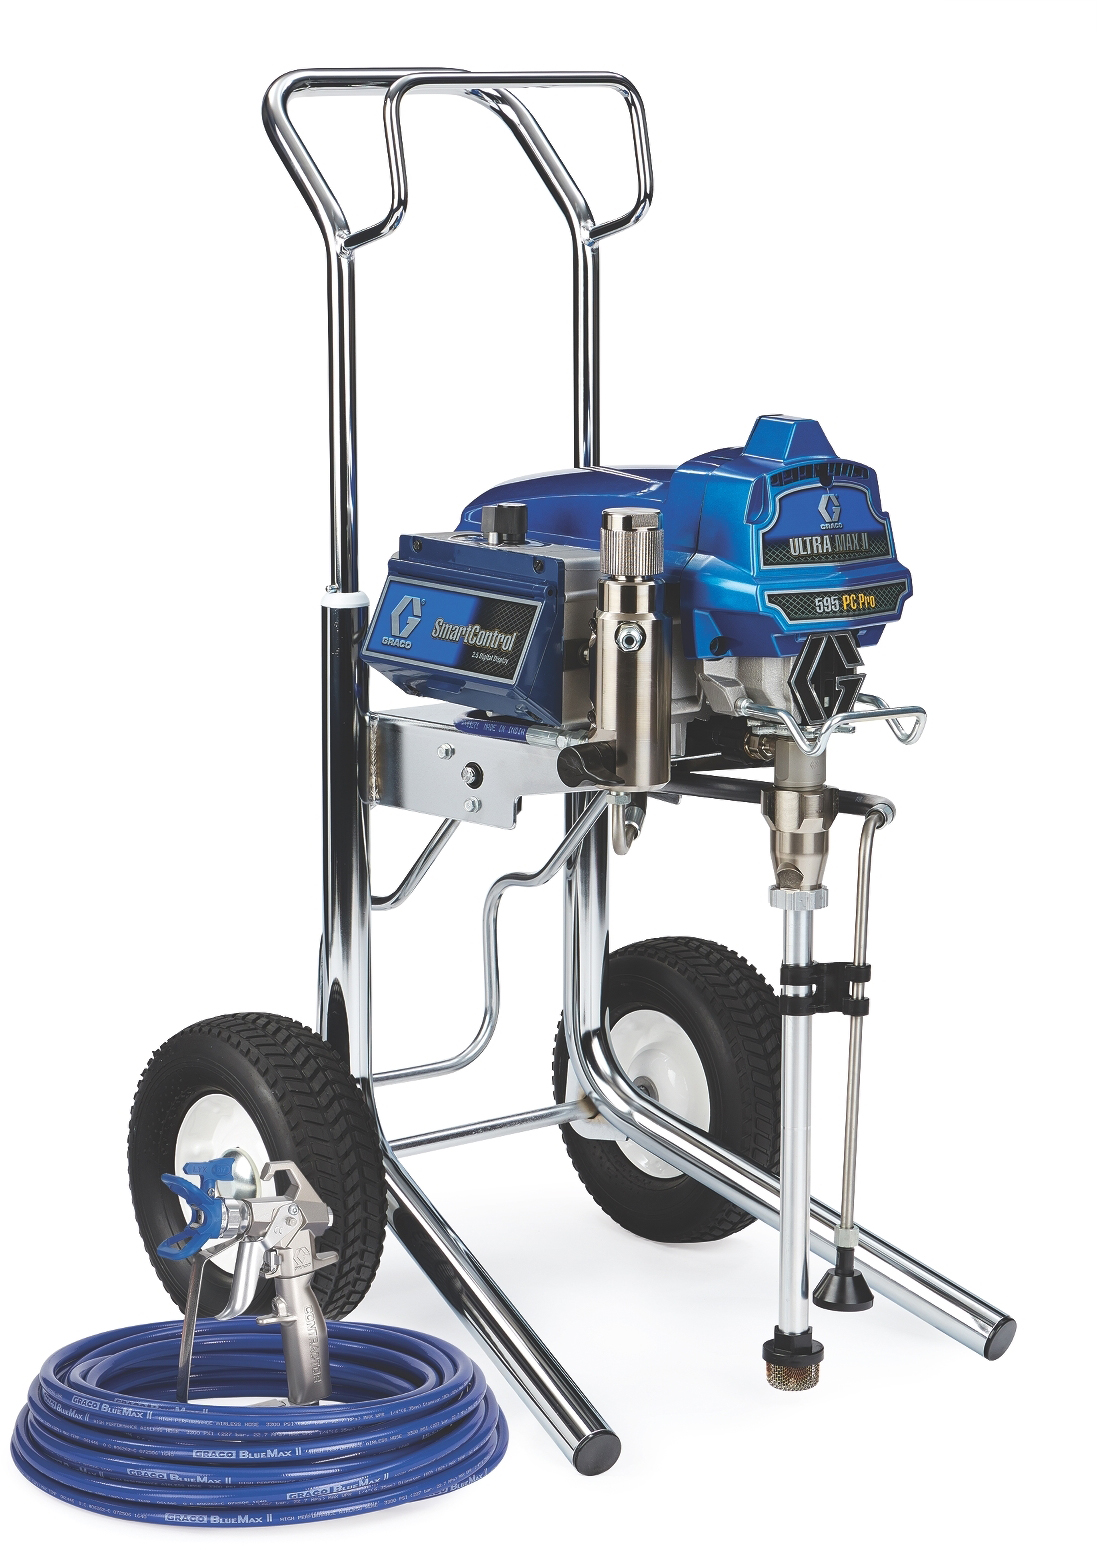 Airless Paint Sprayer 590 ST Pro Image